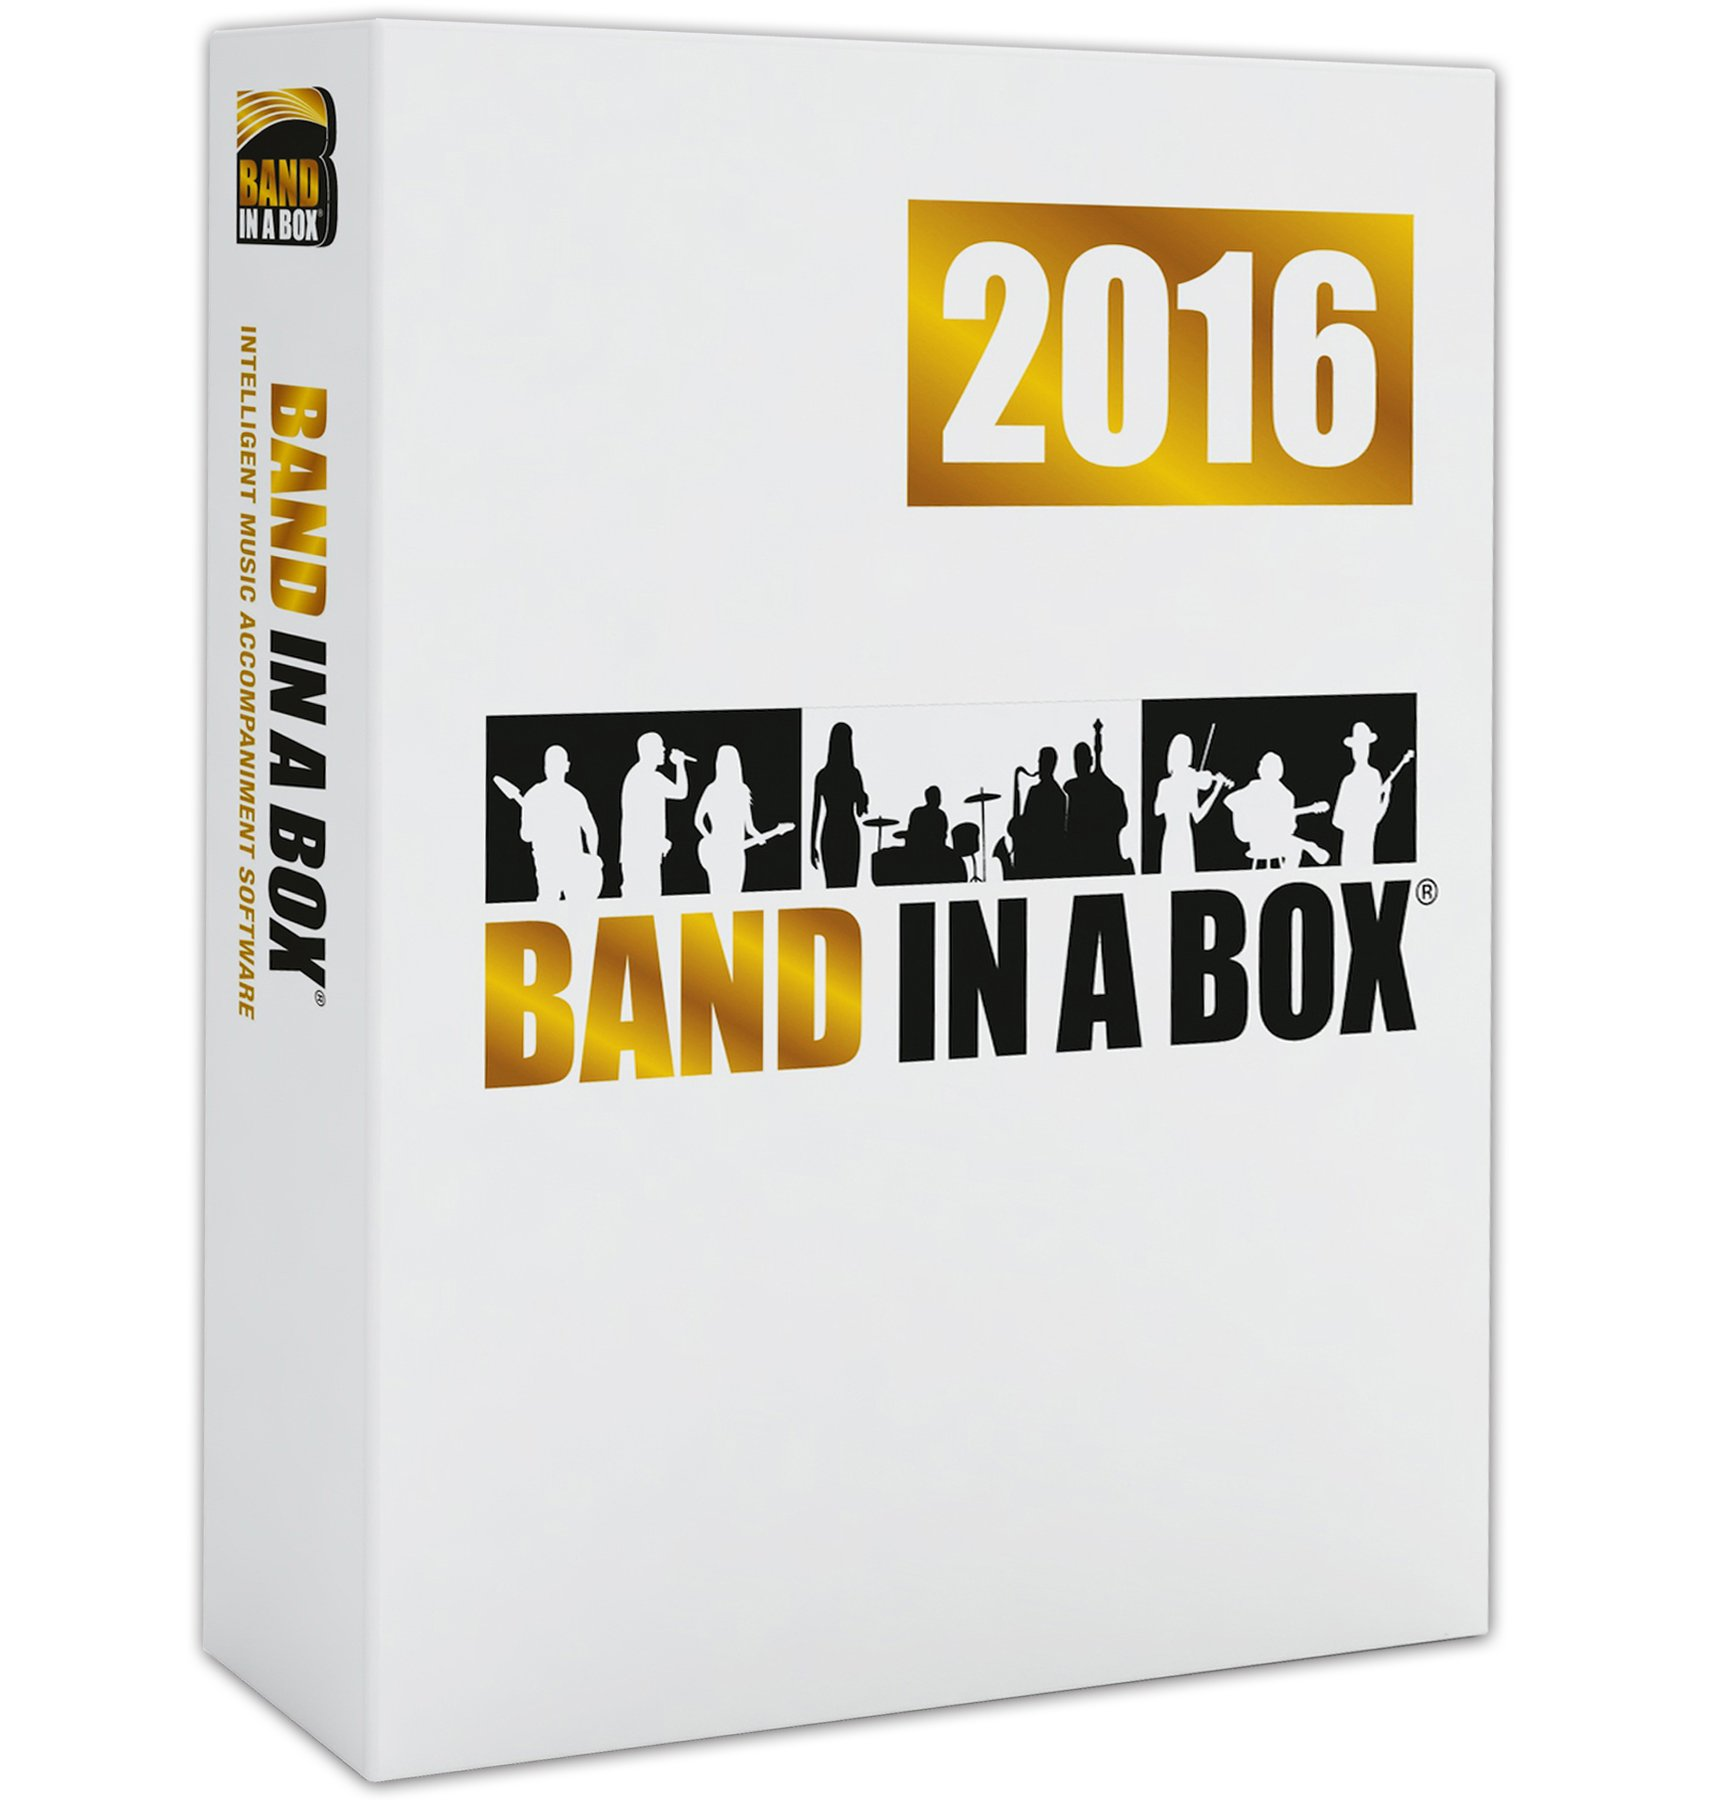 Band-in-a-Box 2016 Pro [Old Version, Mac DVD-ROM] by PG Music Inc.